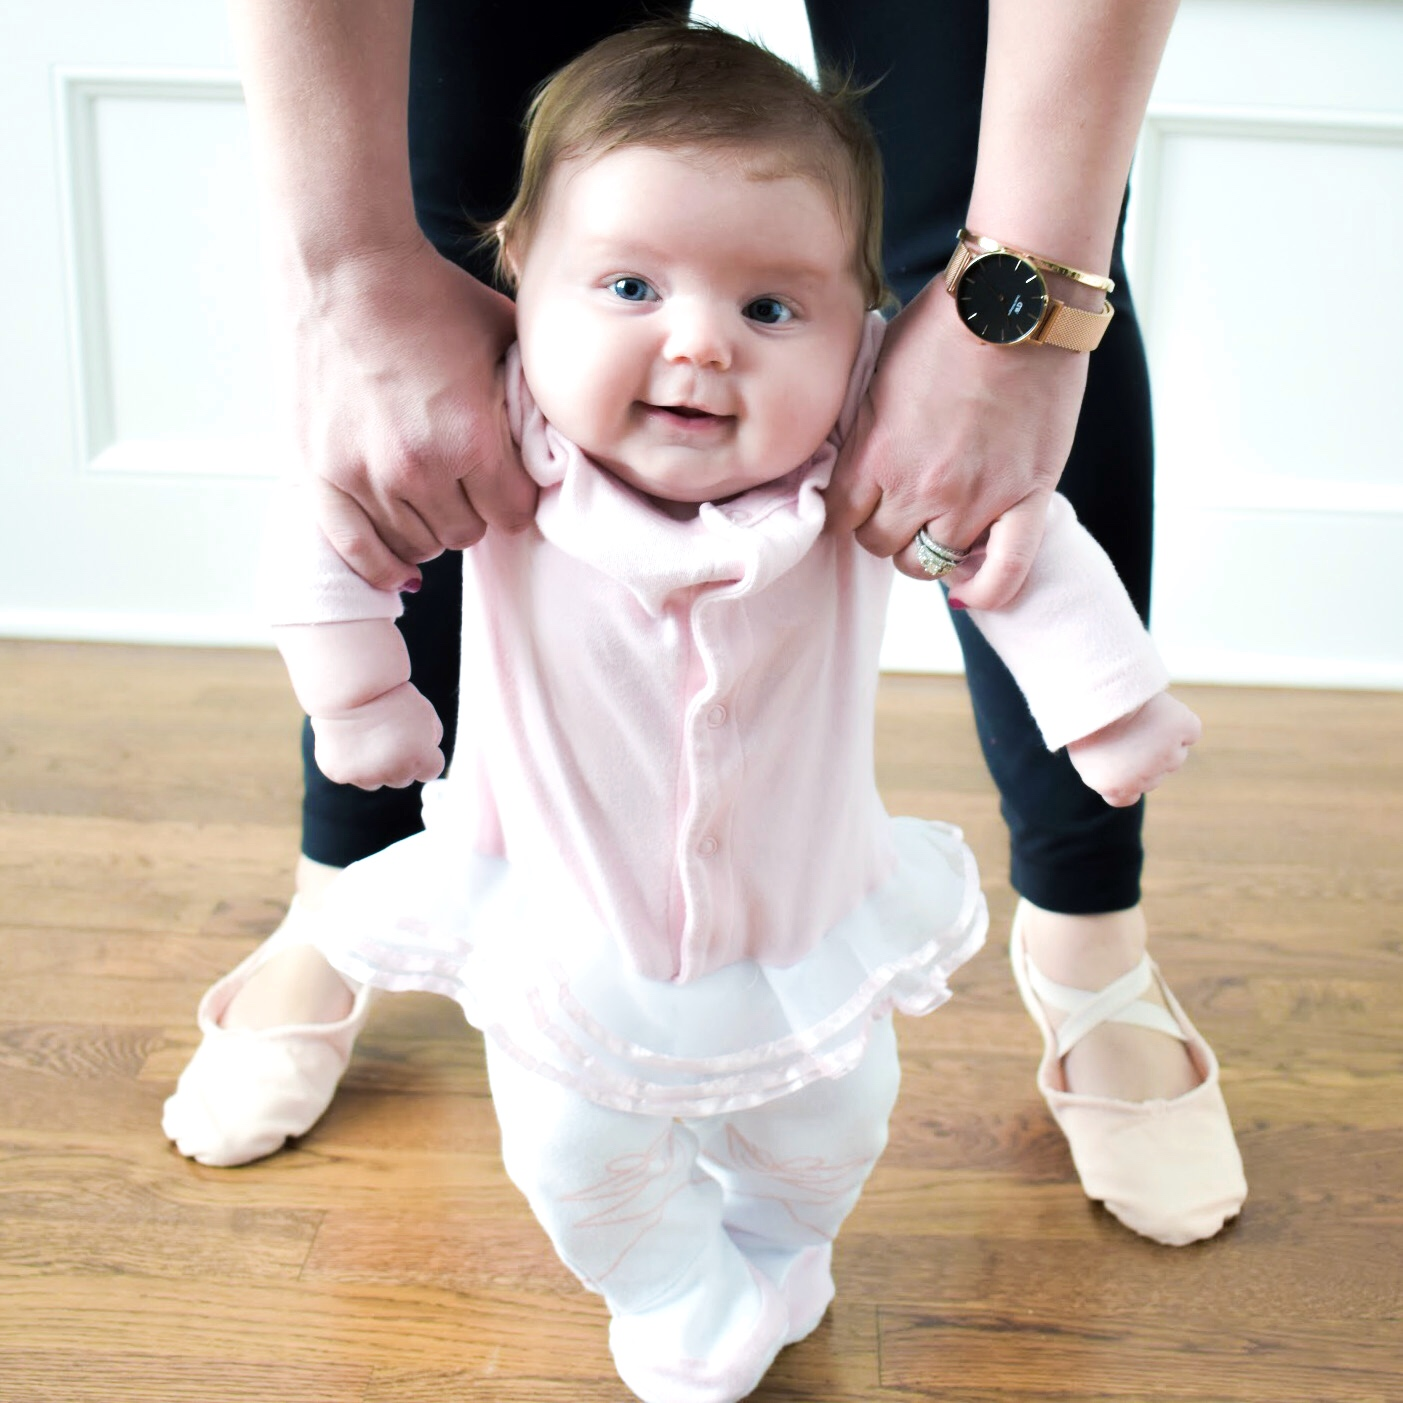 Best Things About Having a Daughter: Whether you just found out you're expecting a daughter or are a seasoned girl mom, you've probably thought about the best things about having a daughter. Blogger COVET by tricia shares her favorite things about having a baby girl. There are so many fun activities to do with a baby girl!